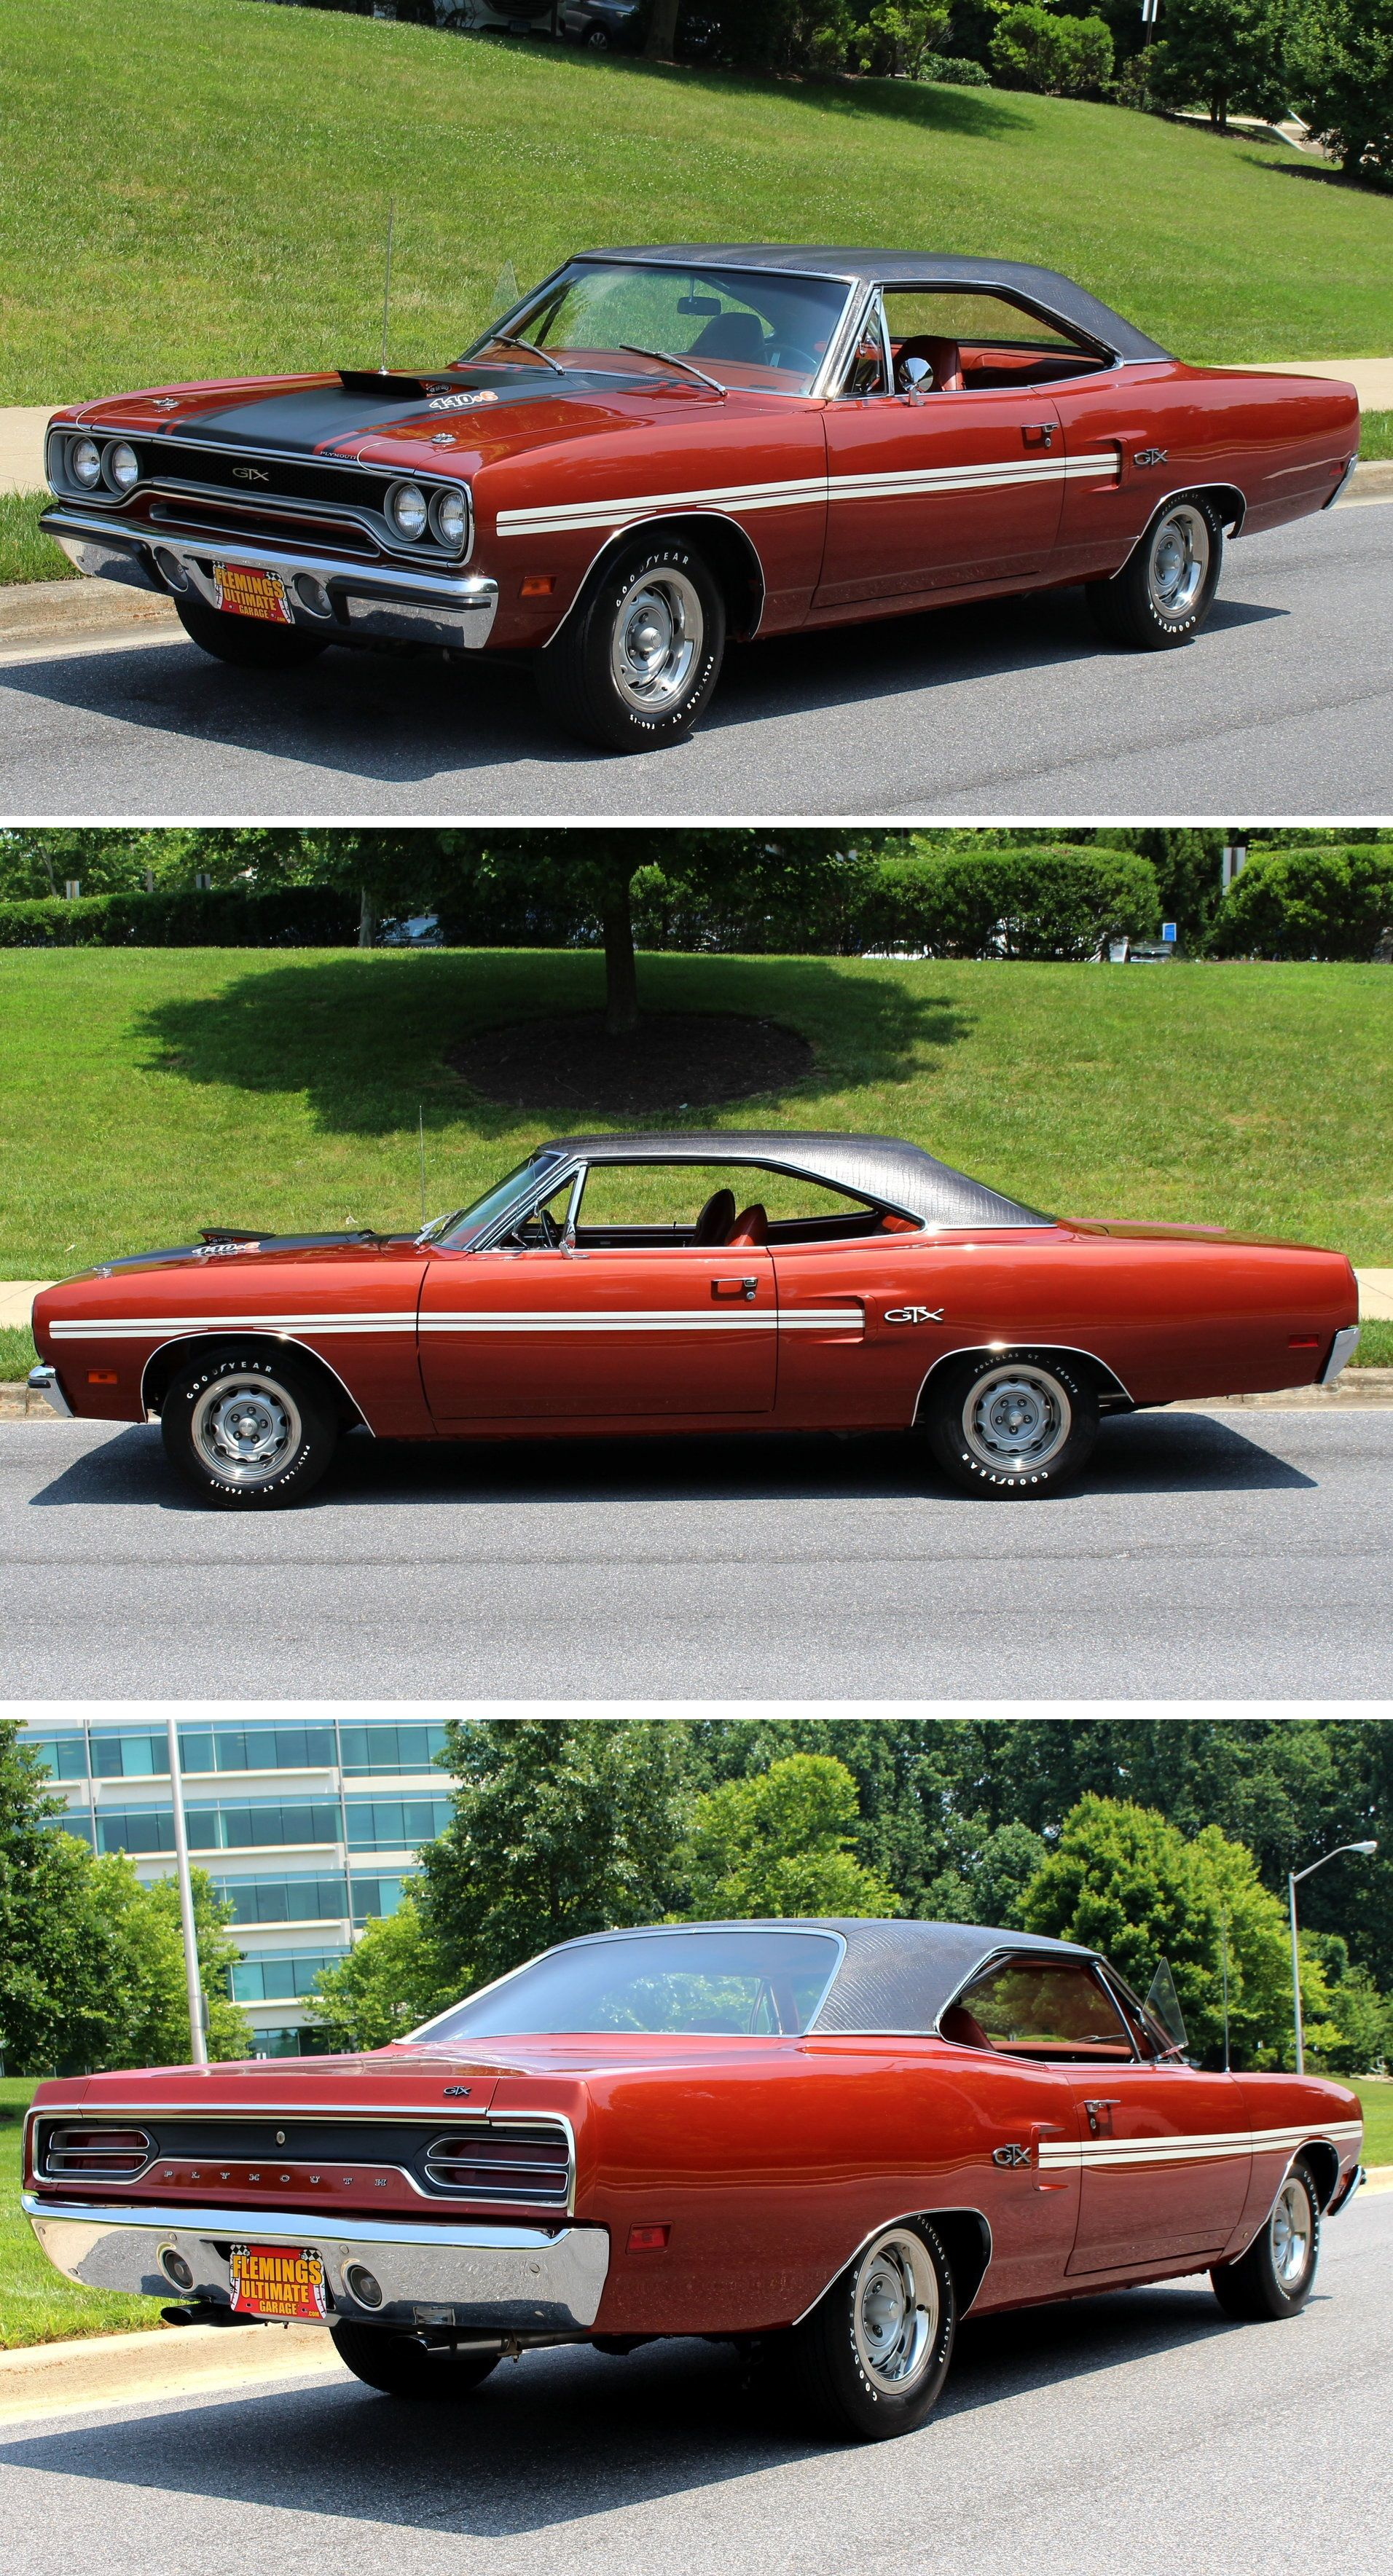 1970 Plymouth Gtx Beautifully Restored Example Of This Iconic